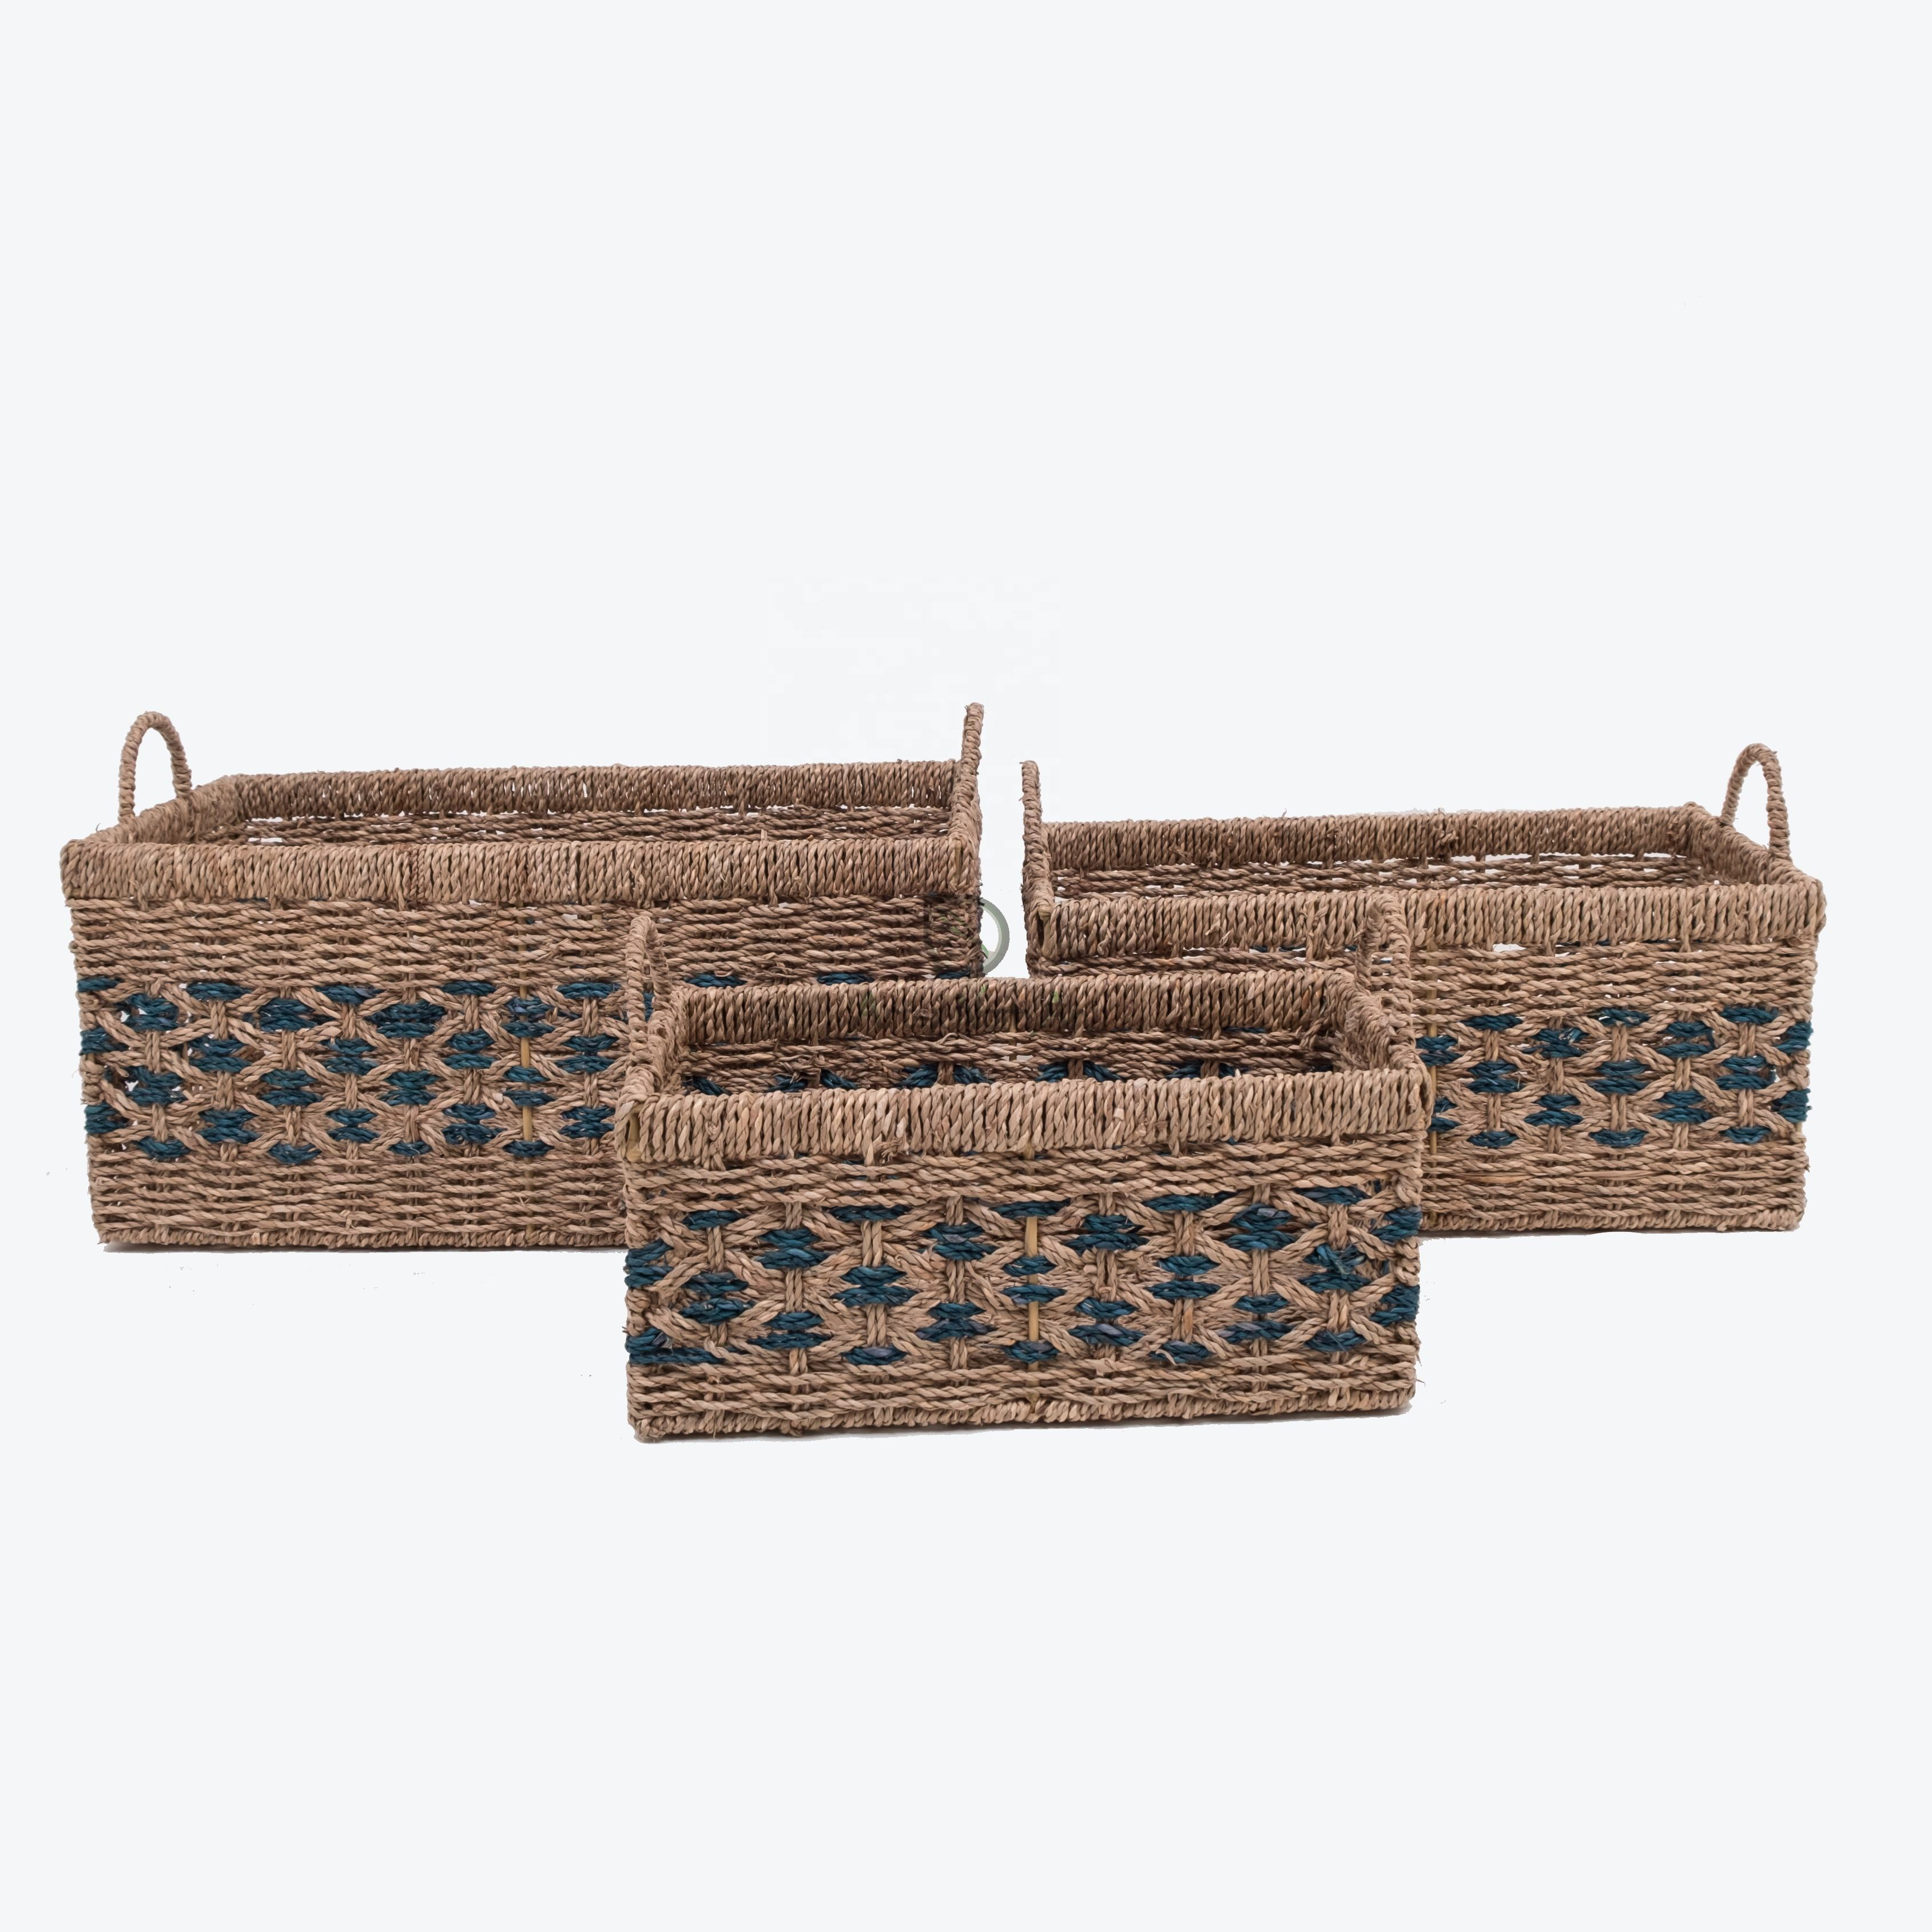 Newest design home storage organizer seagrass woven decorative rectangular basket hamper with handles